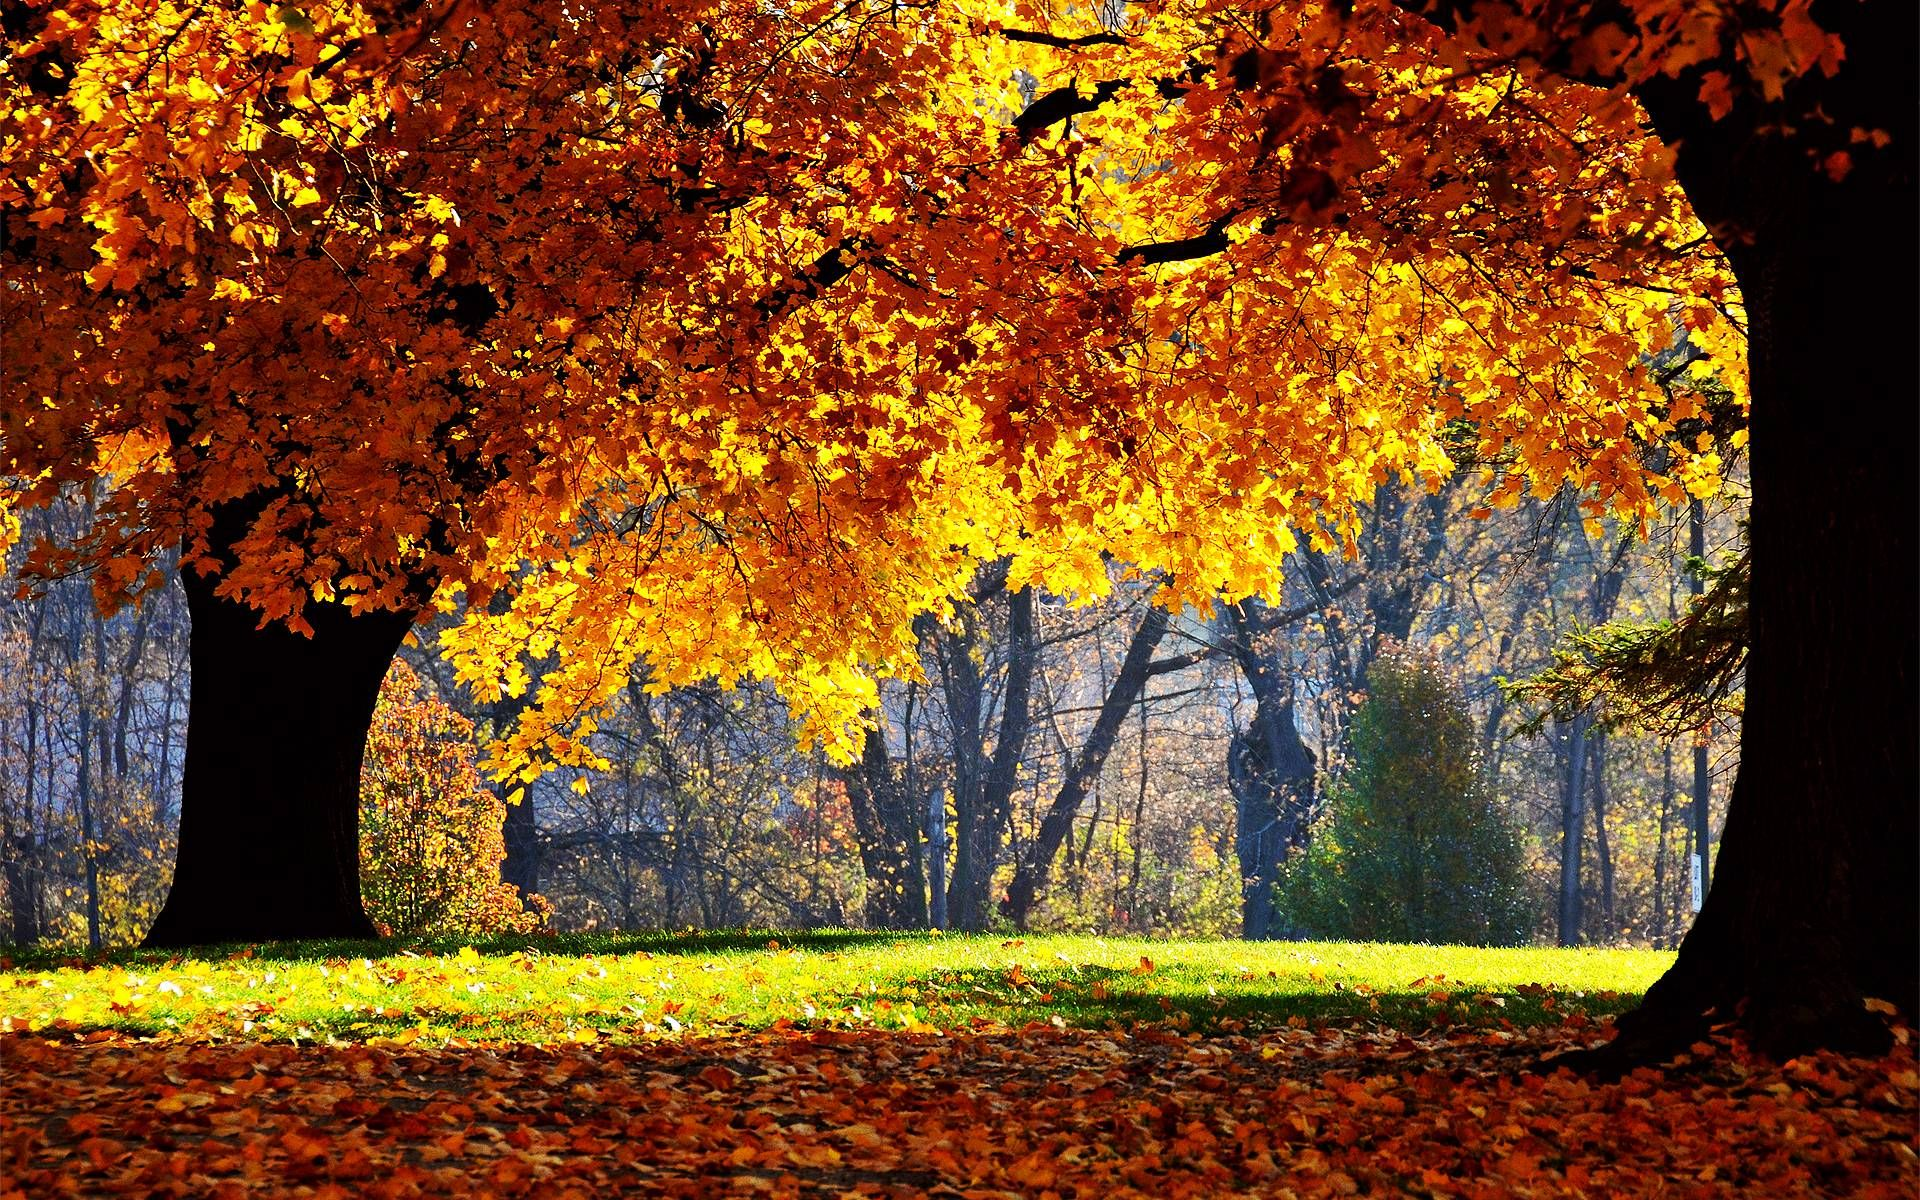 Free Fall Desktop Backgrounds Autumn Scenery Autumn Landscape Desktop Wallpaper Fall